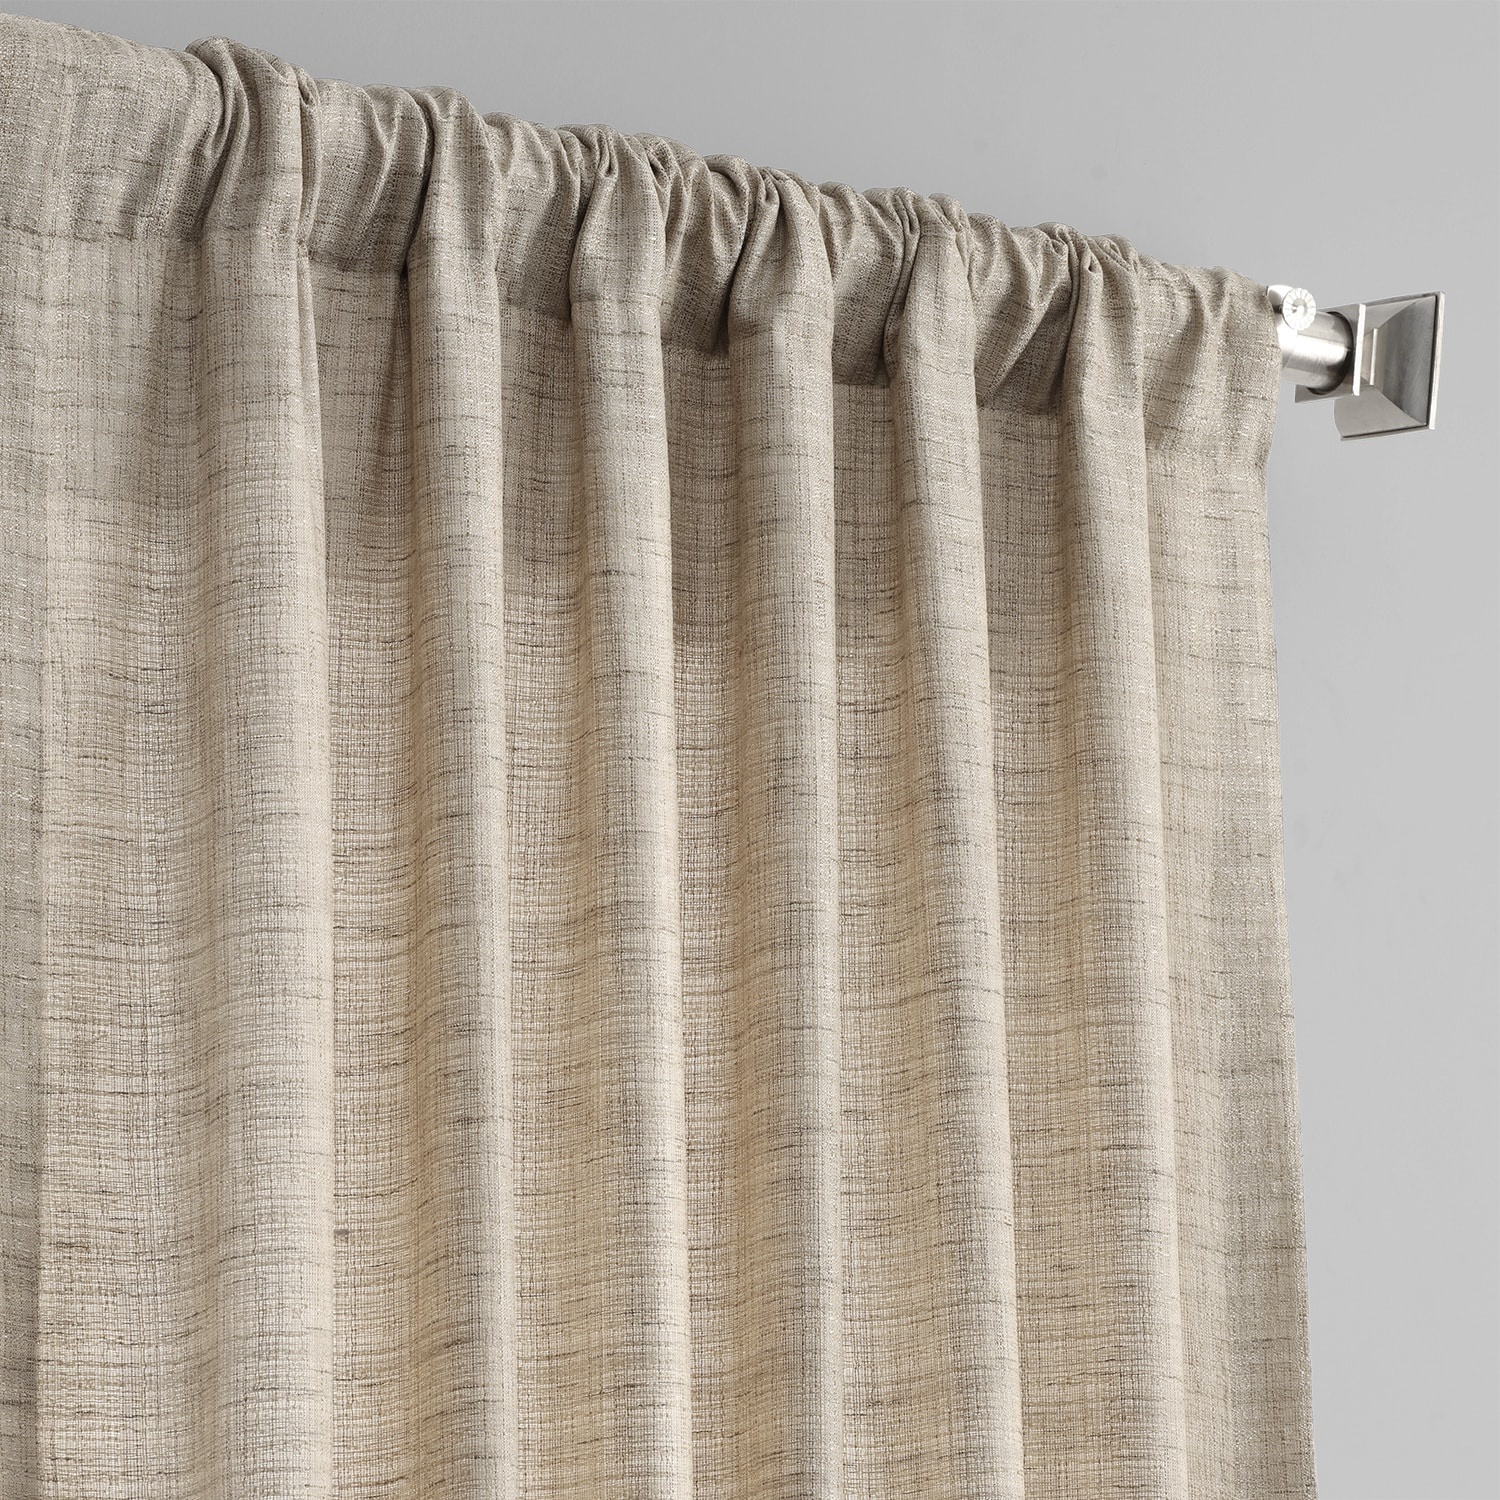 Linen Tan Yarn Dyed Designer Faux Raw Textured Silk Curtain